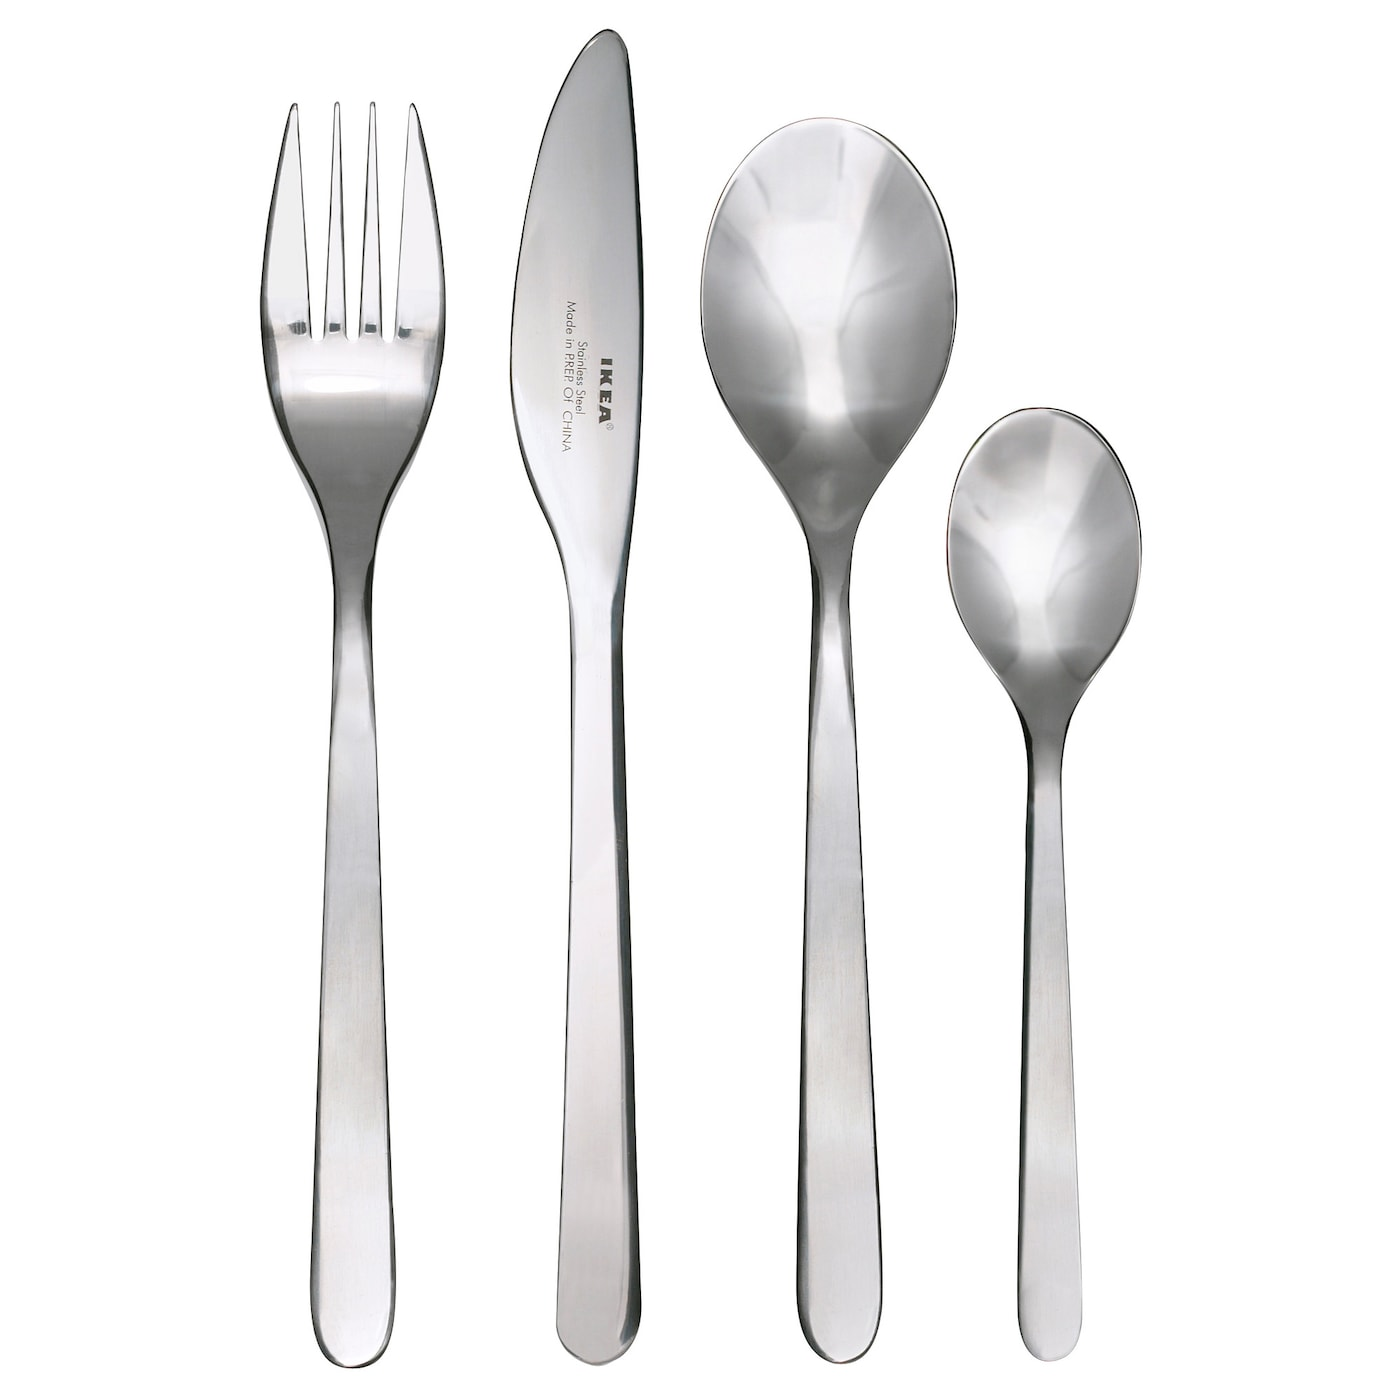 IKEA FÖRNUFT 24-piece cutlery set